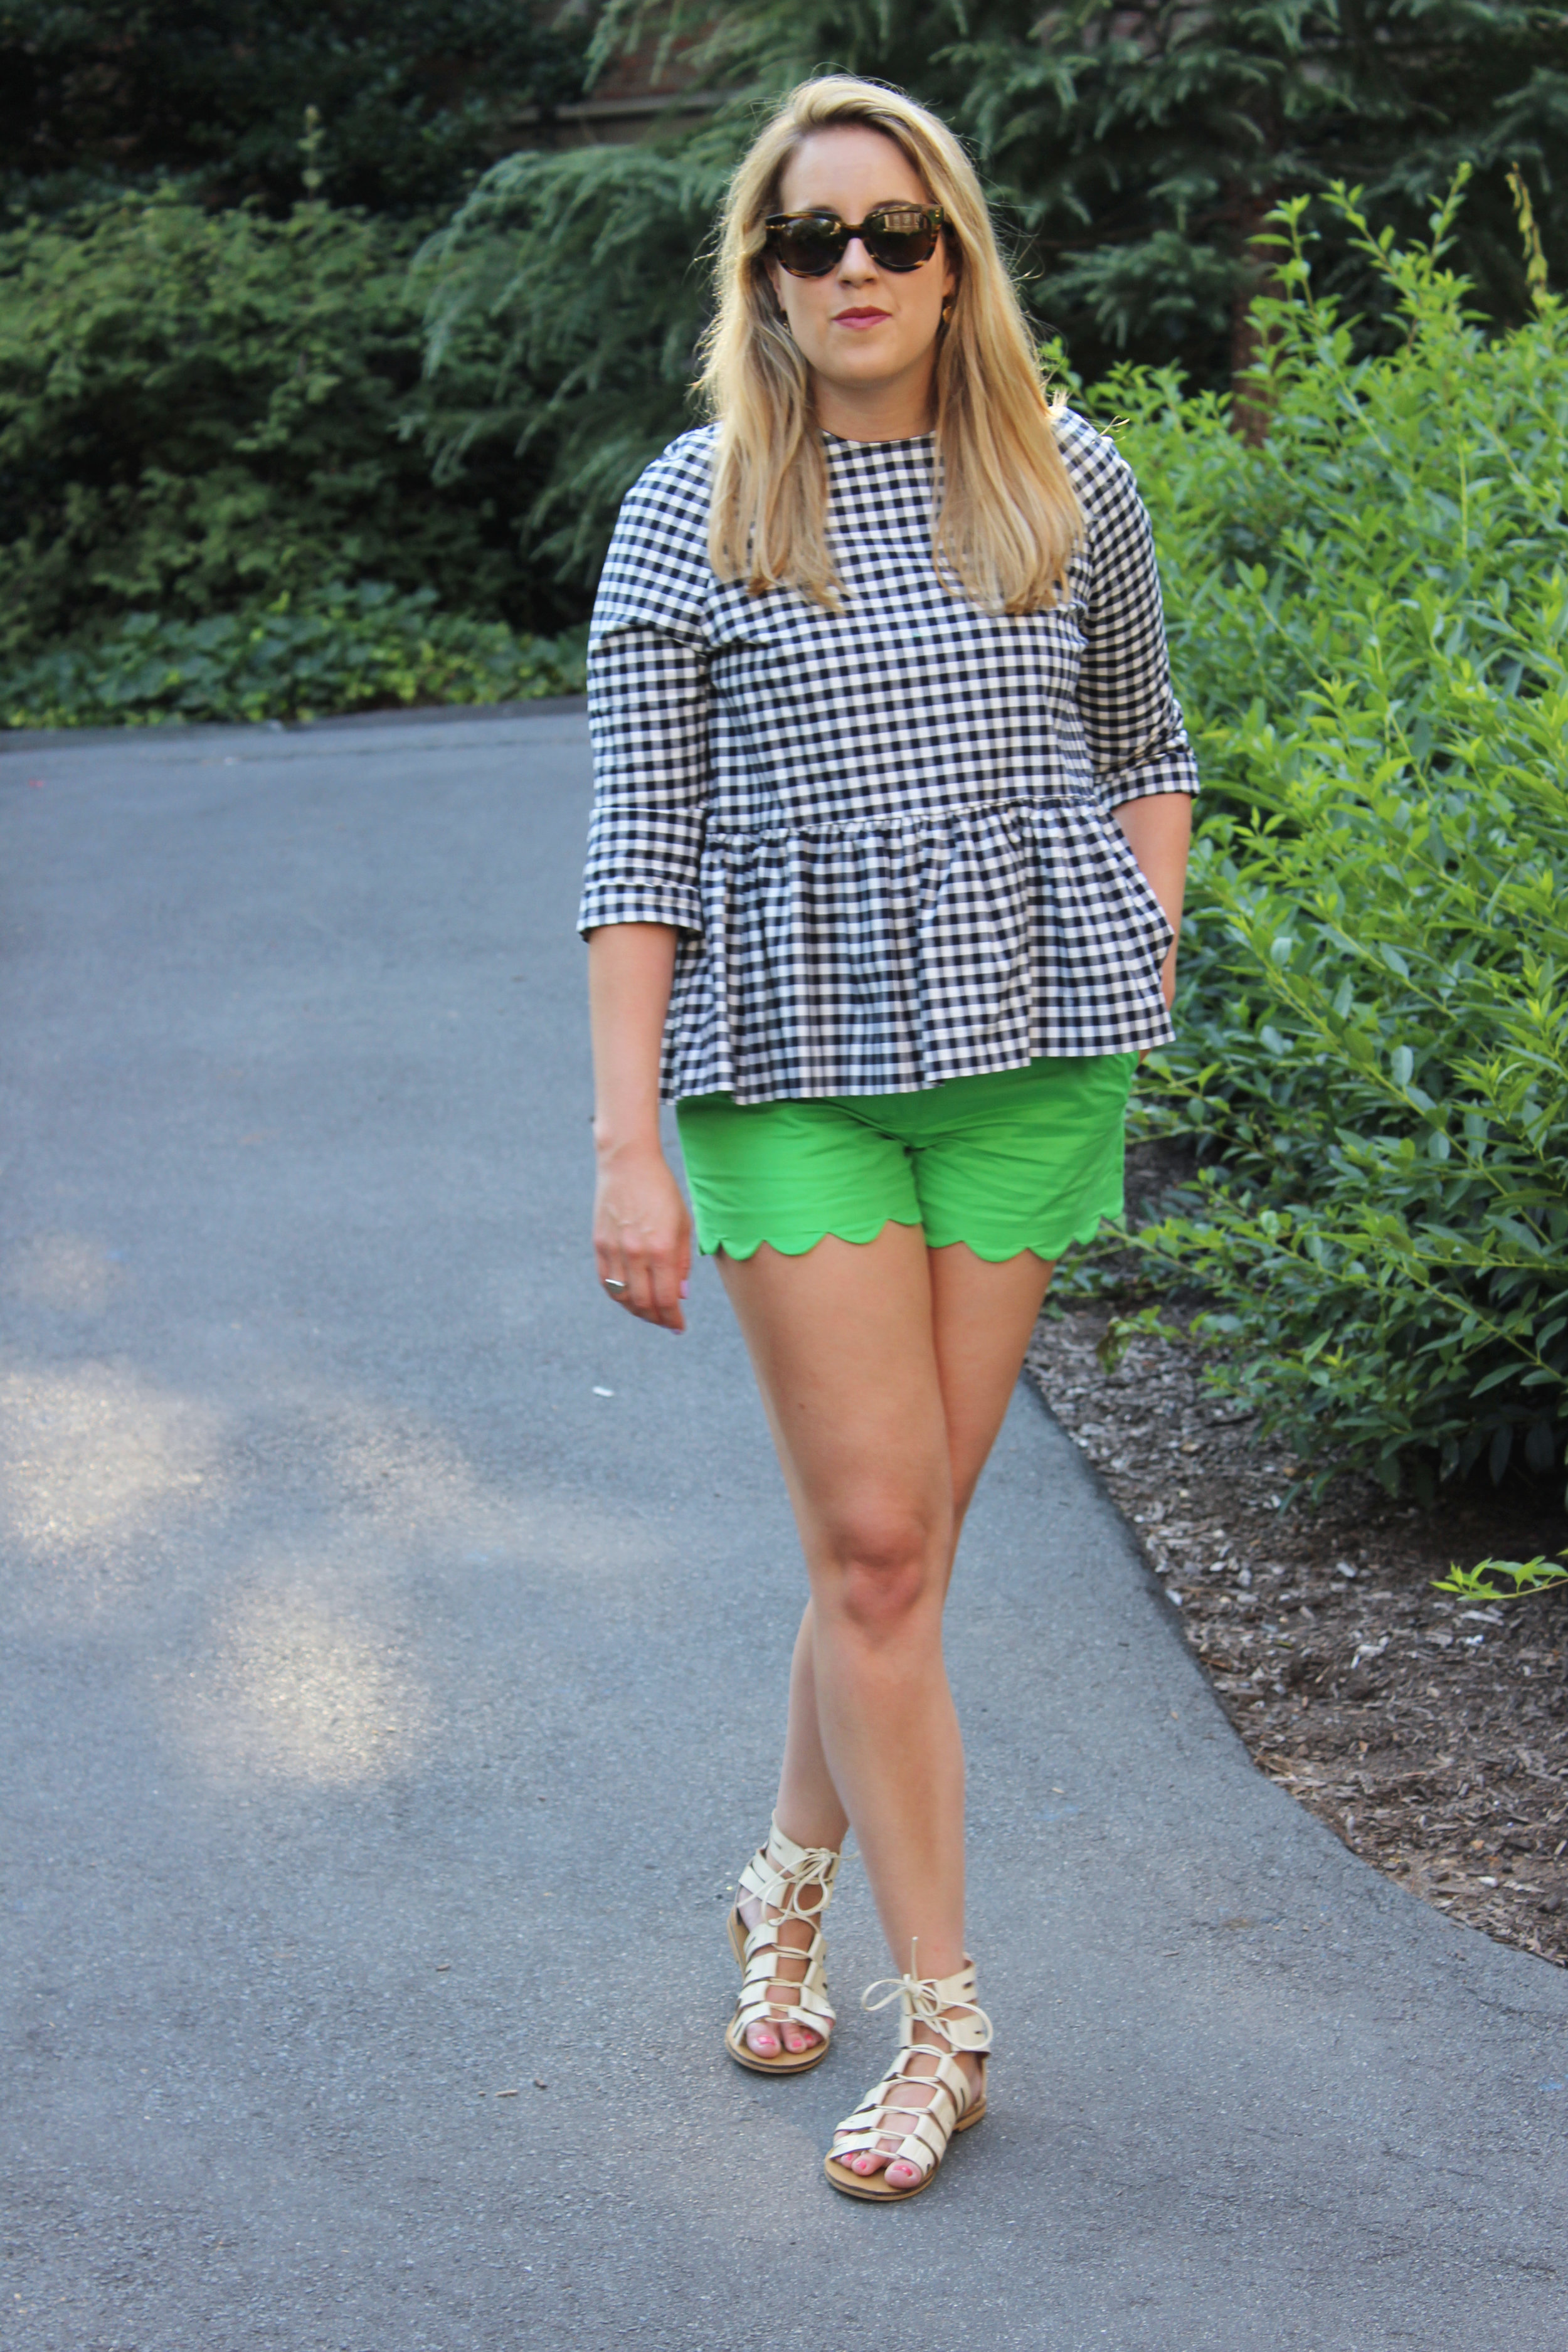 Mixing different colors and styles can lead to the best unexpected outfits